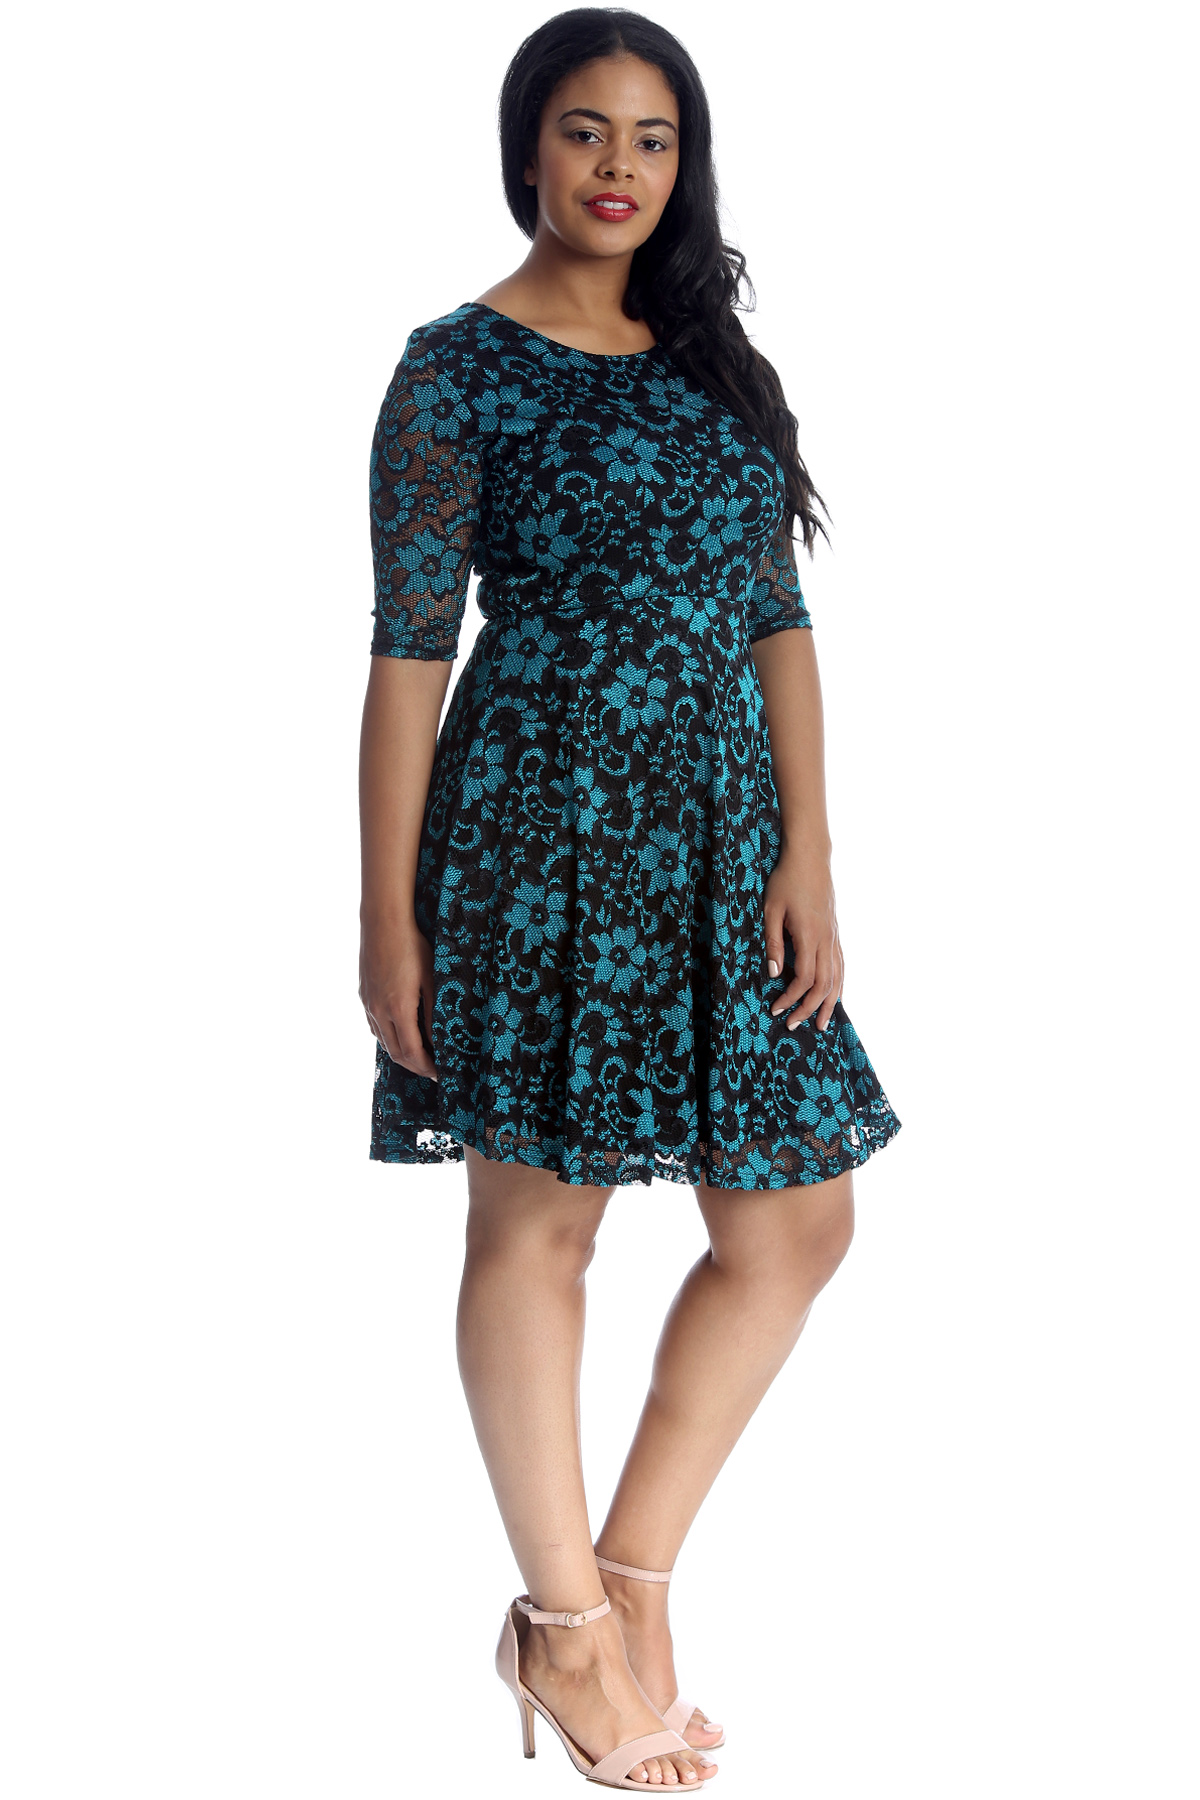 New Womens Plus Size Dress Ladies Skater Floral Lace 2 ...